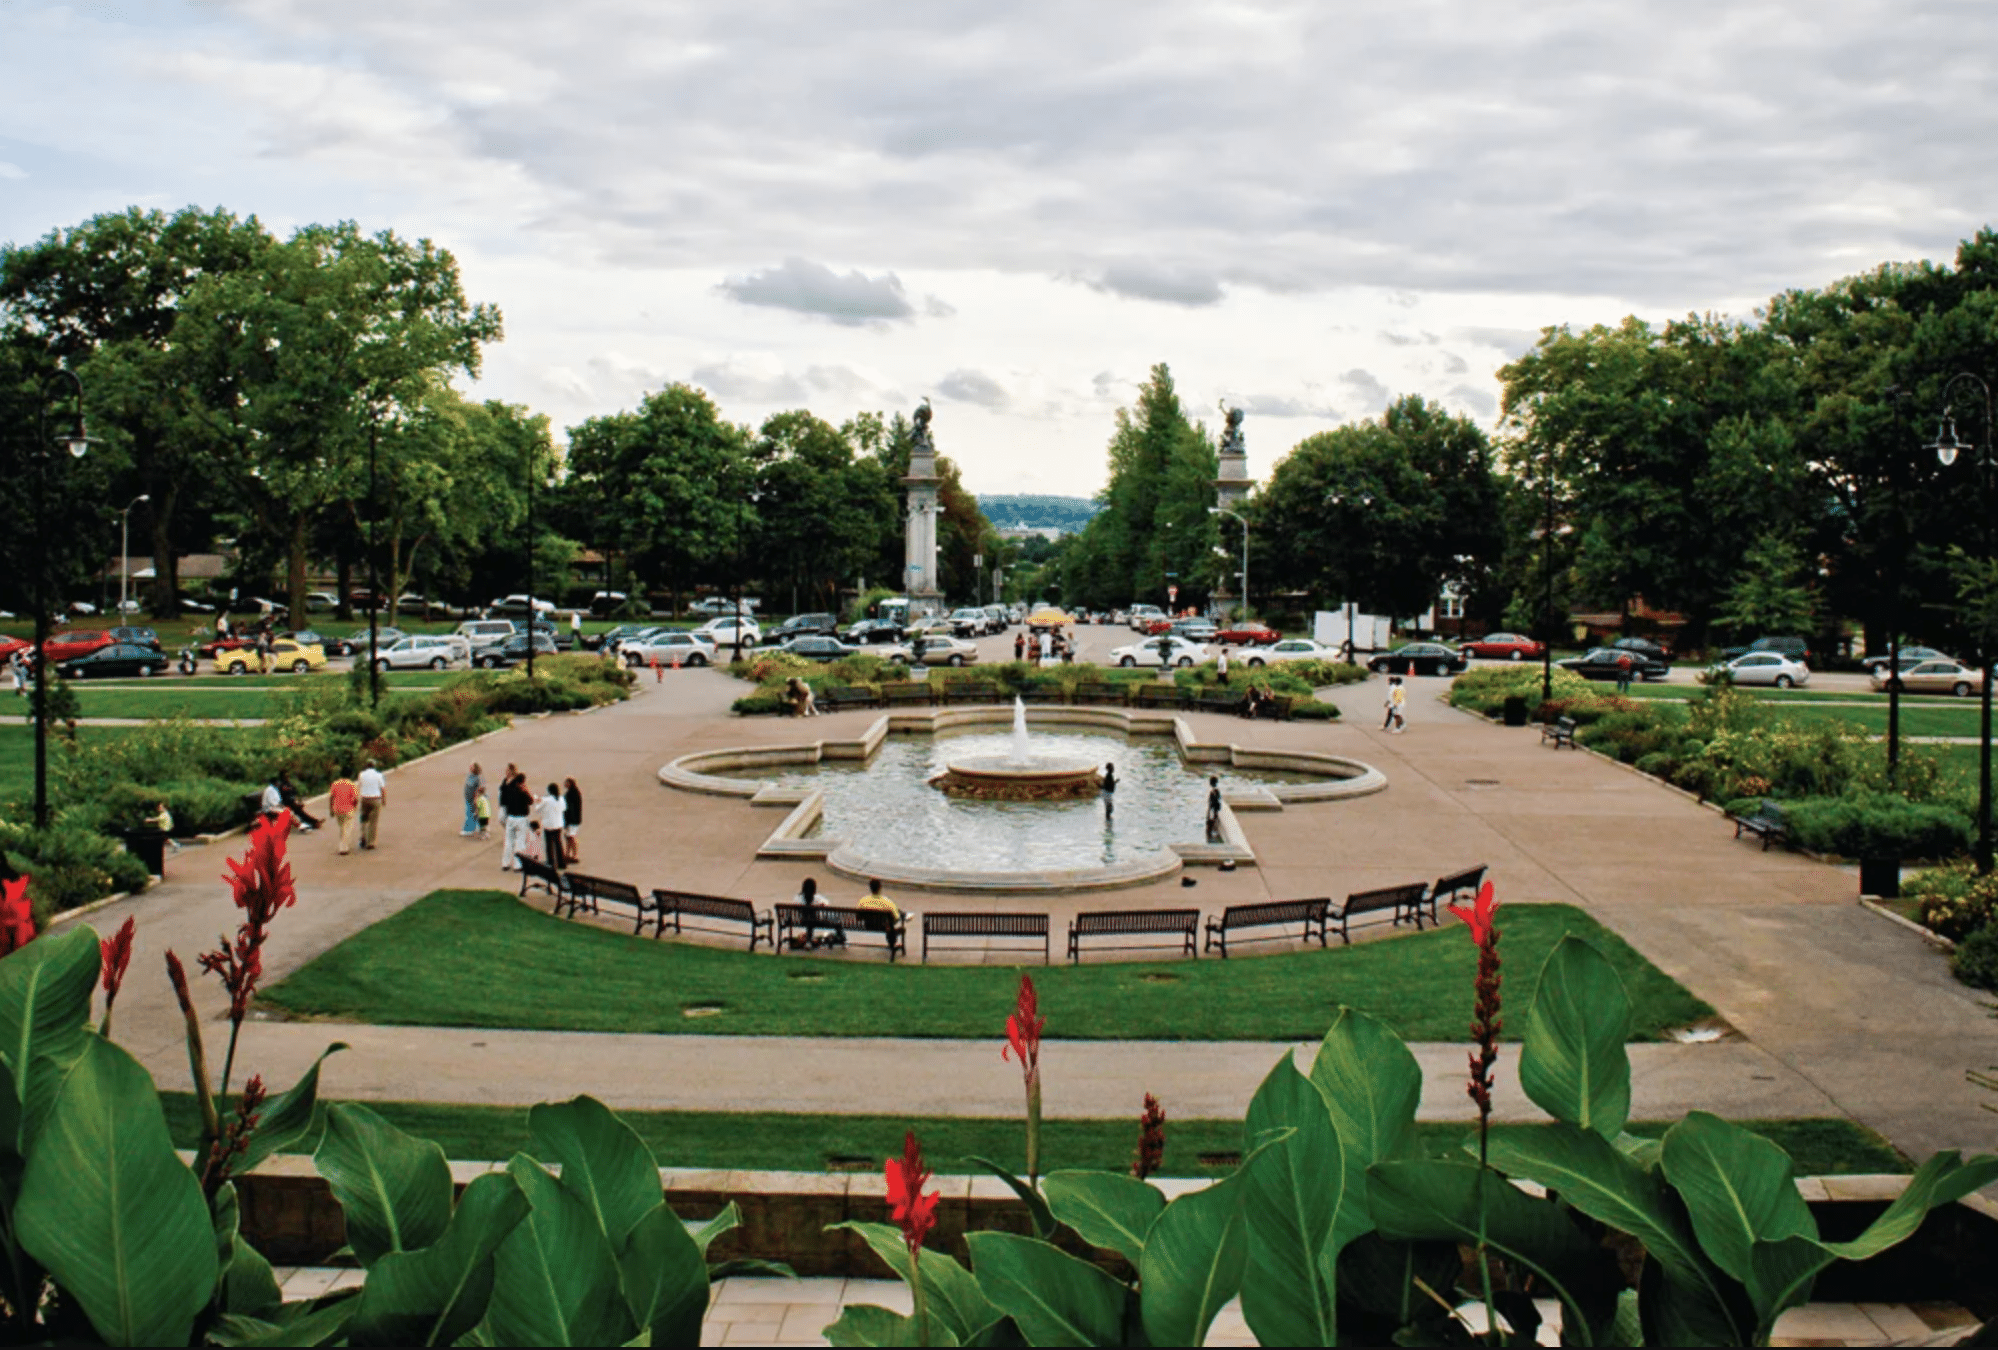 Image featuring Highland Park fountain on an overcast day with flowers in bloom